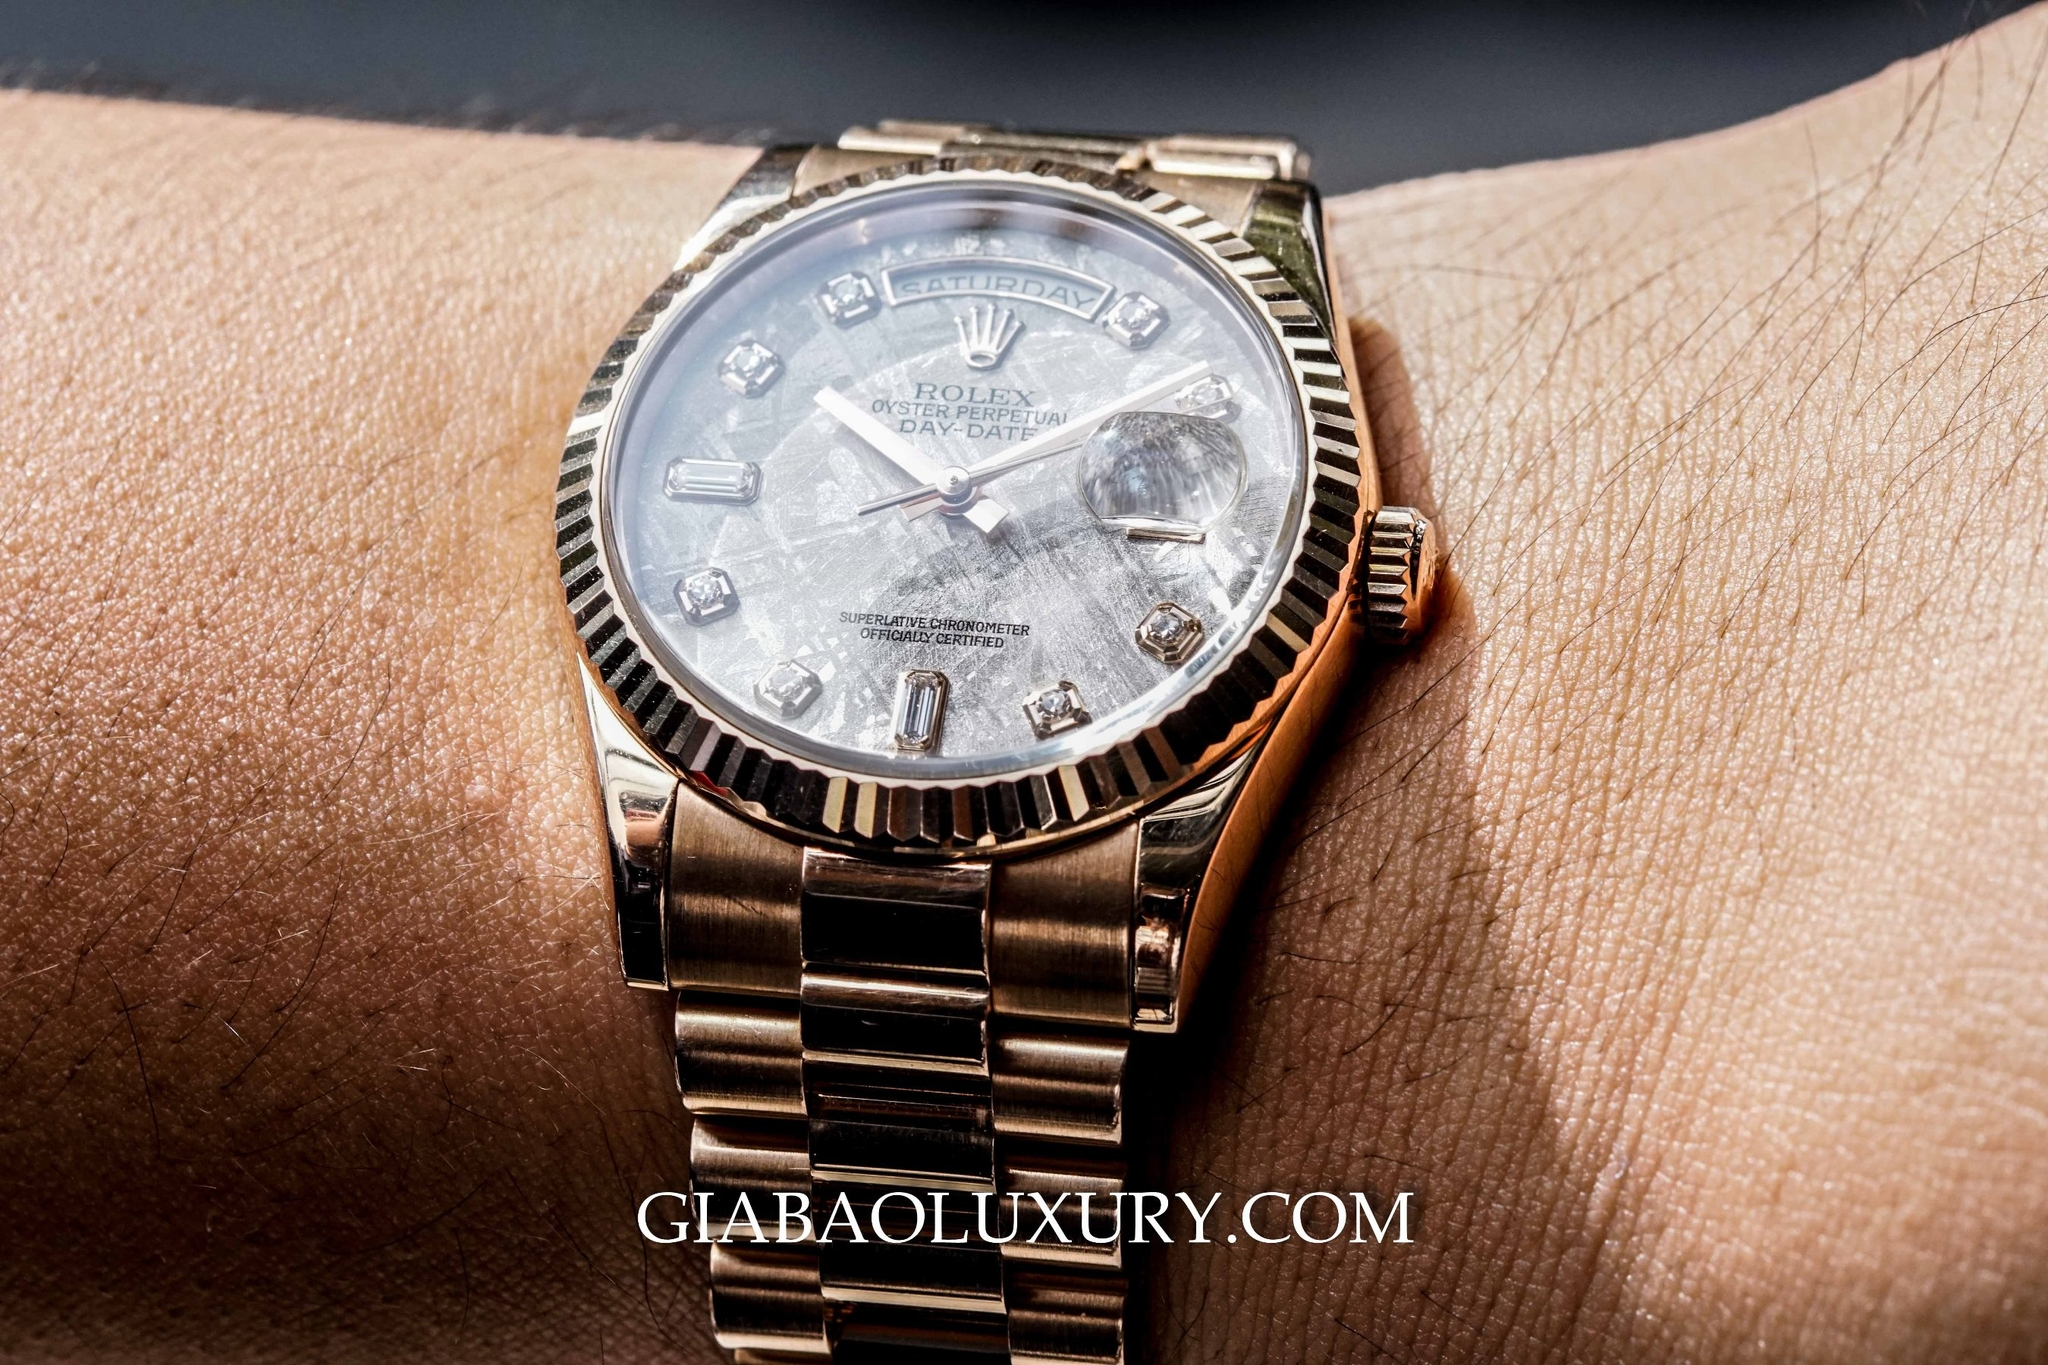 Đồng hồ Rolex Oyster Perpetual Day Date 118235 Mặt Thiên Thạch